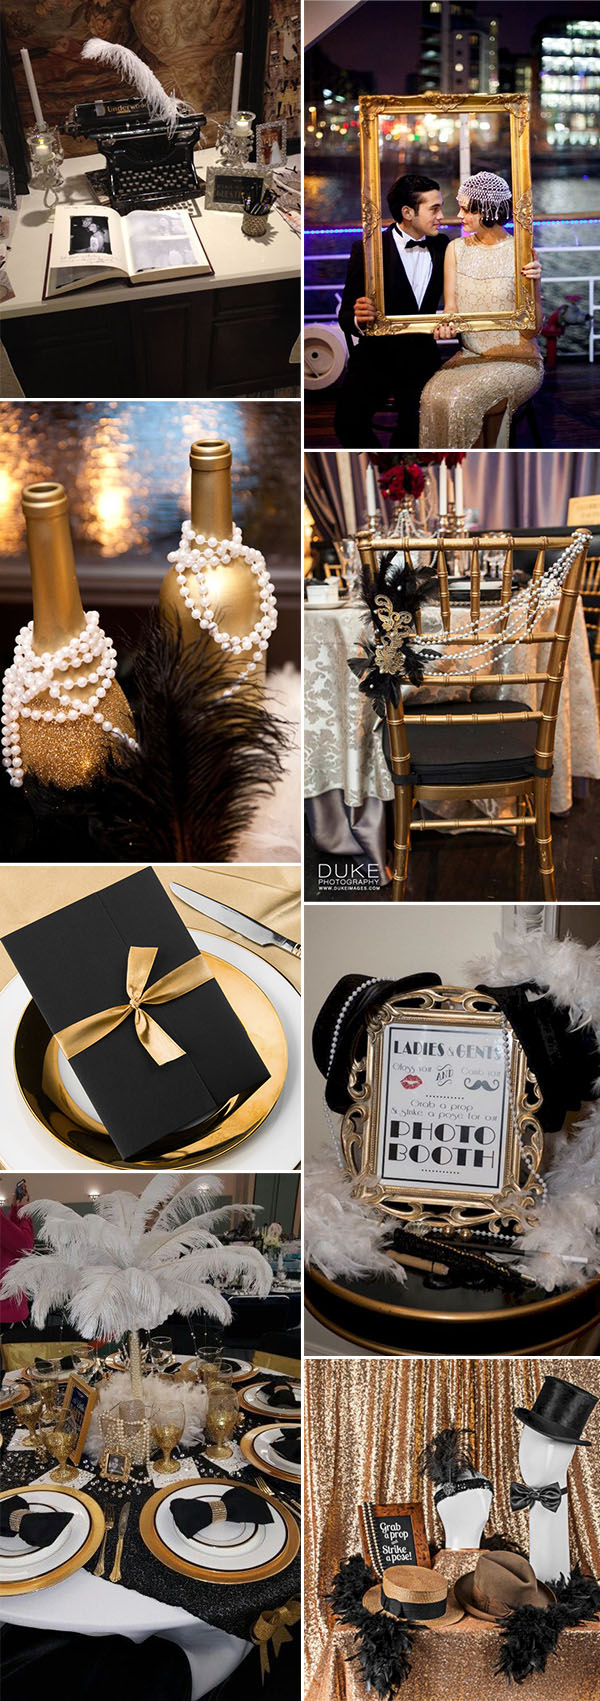 Gatsby vintage glamour wedding decoration ideas